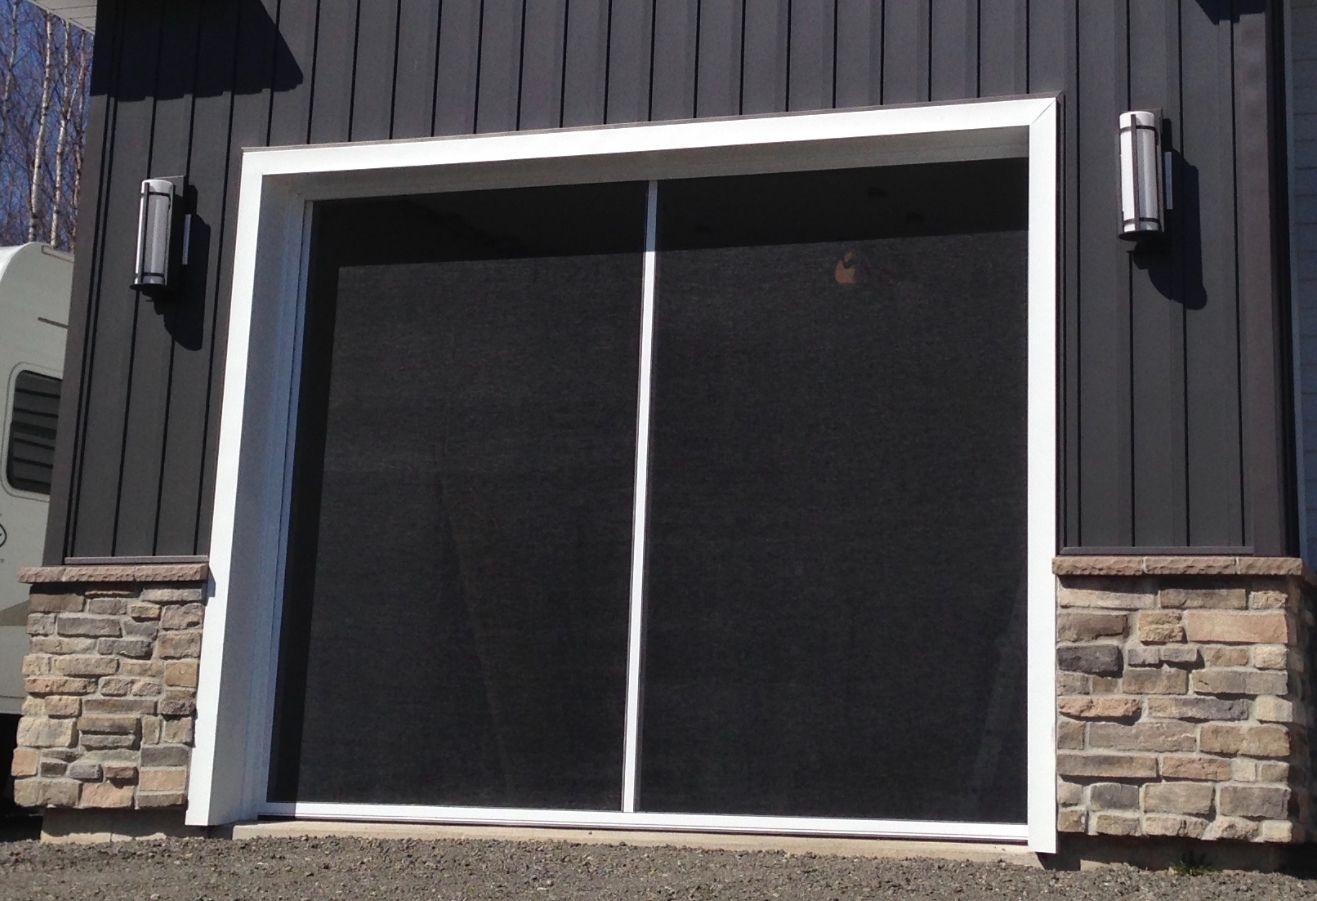 Mosquitozz Is The Name Given To Its Retractable Garage Screen Door